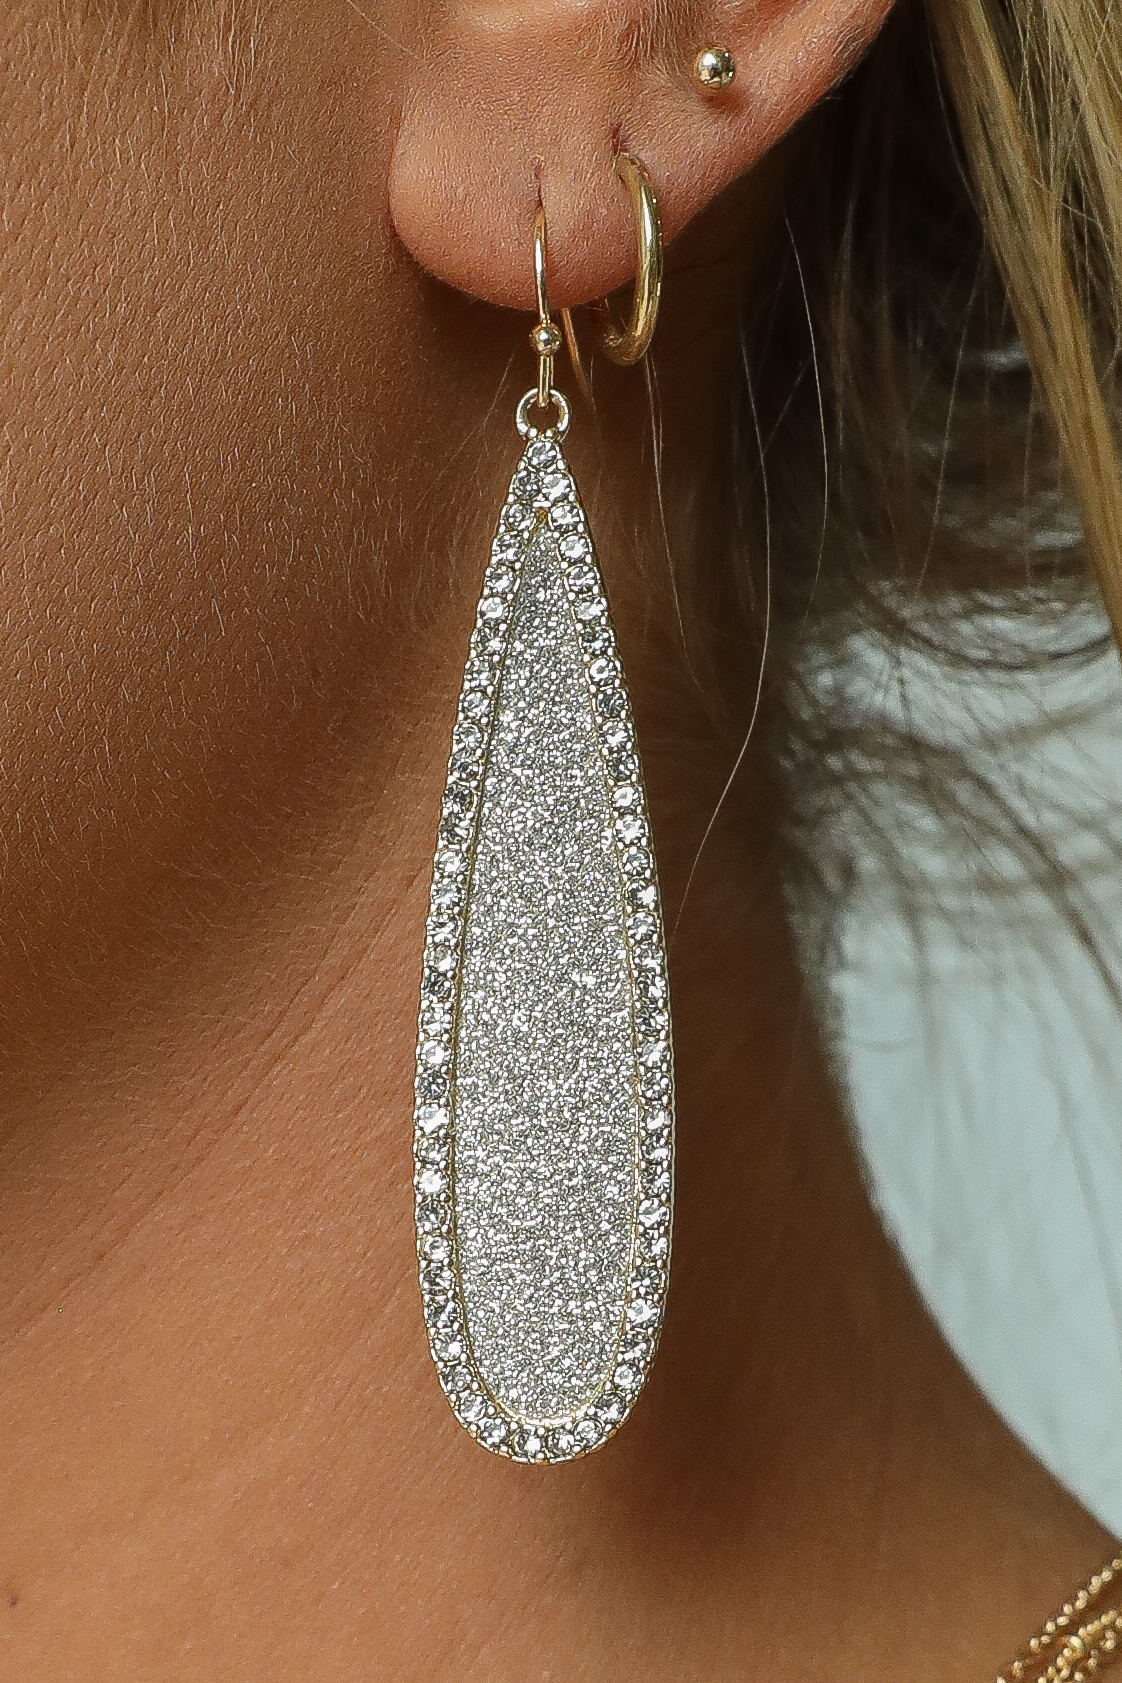 Gold Tear Drop Dangle Earrings with Rhinestone Details